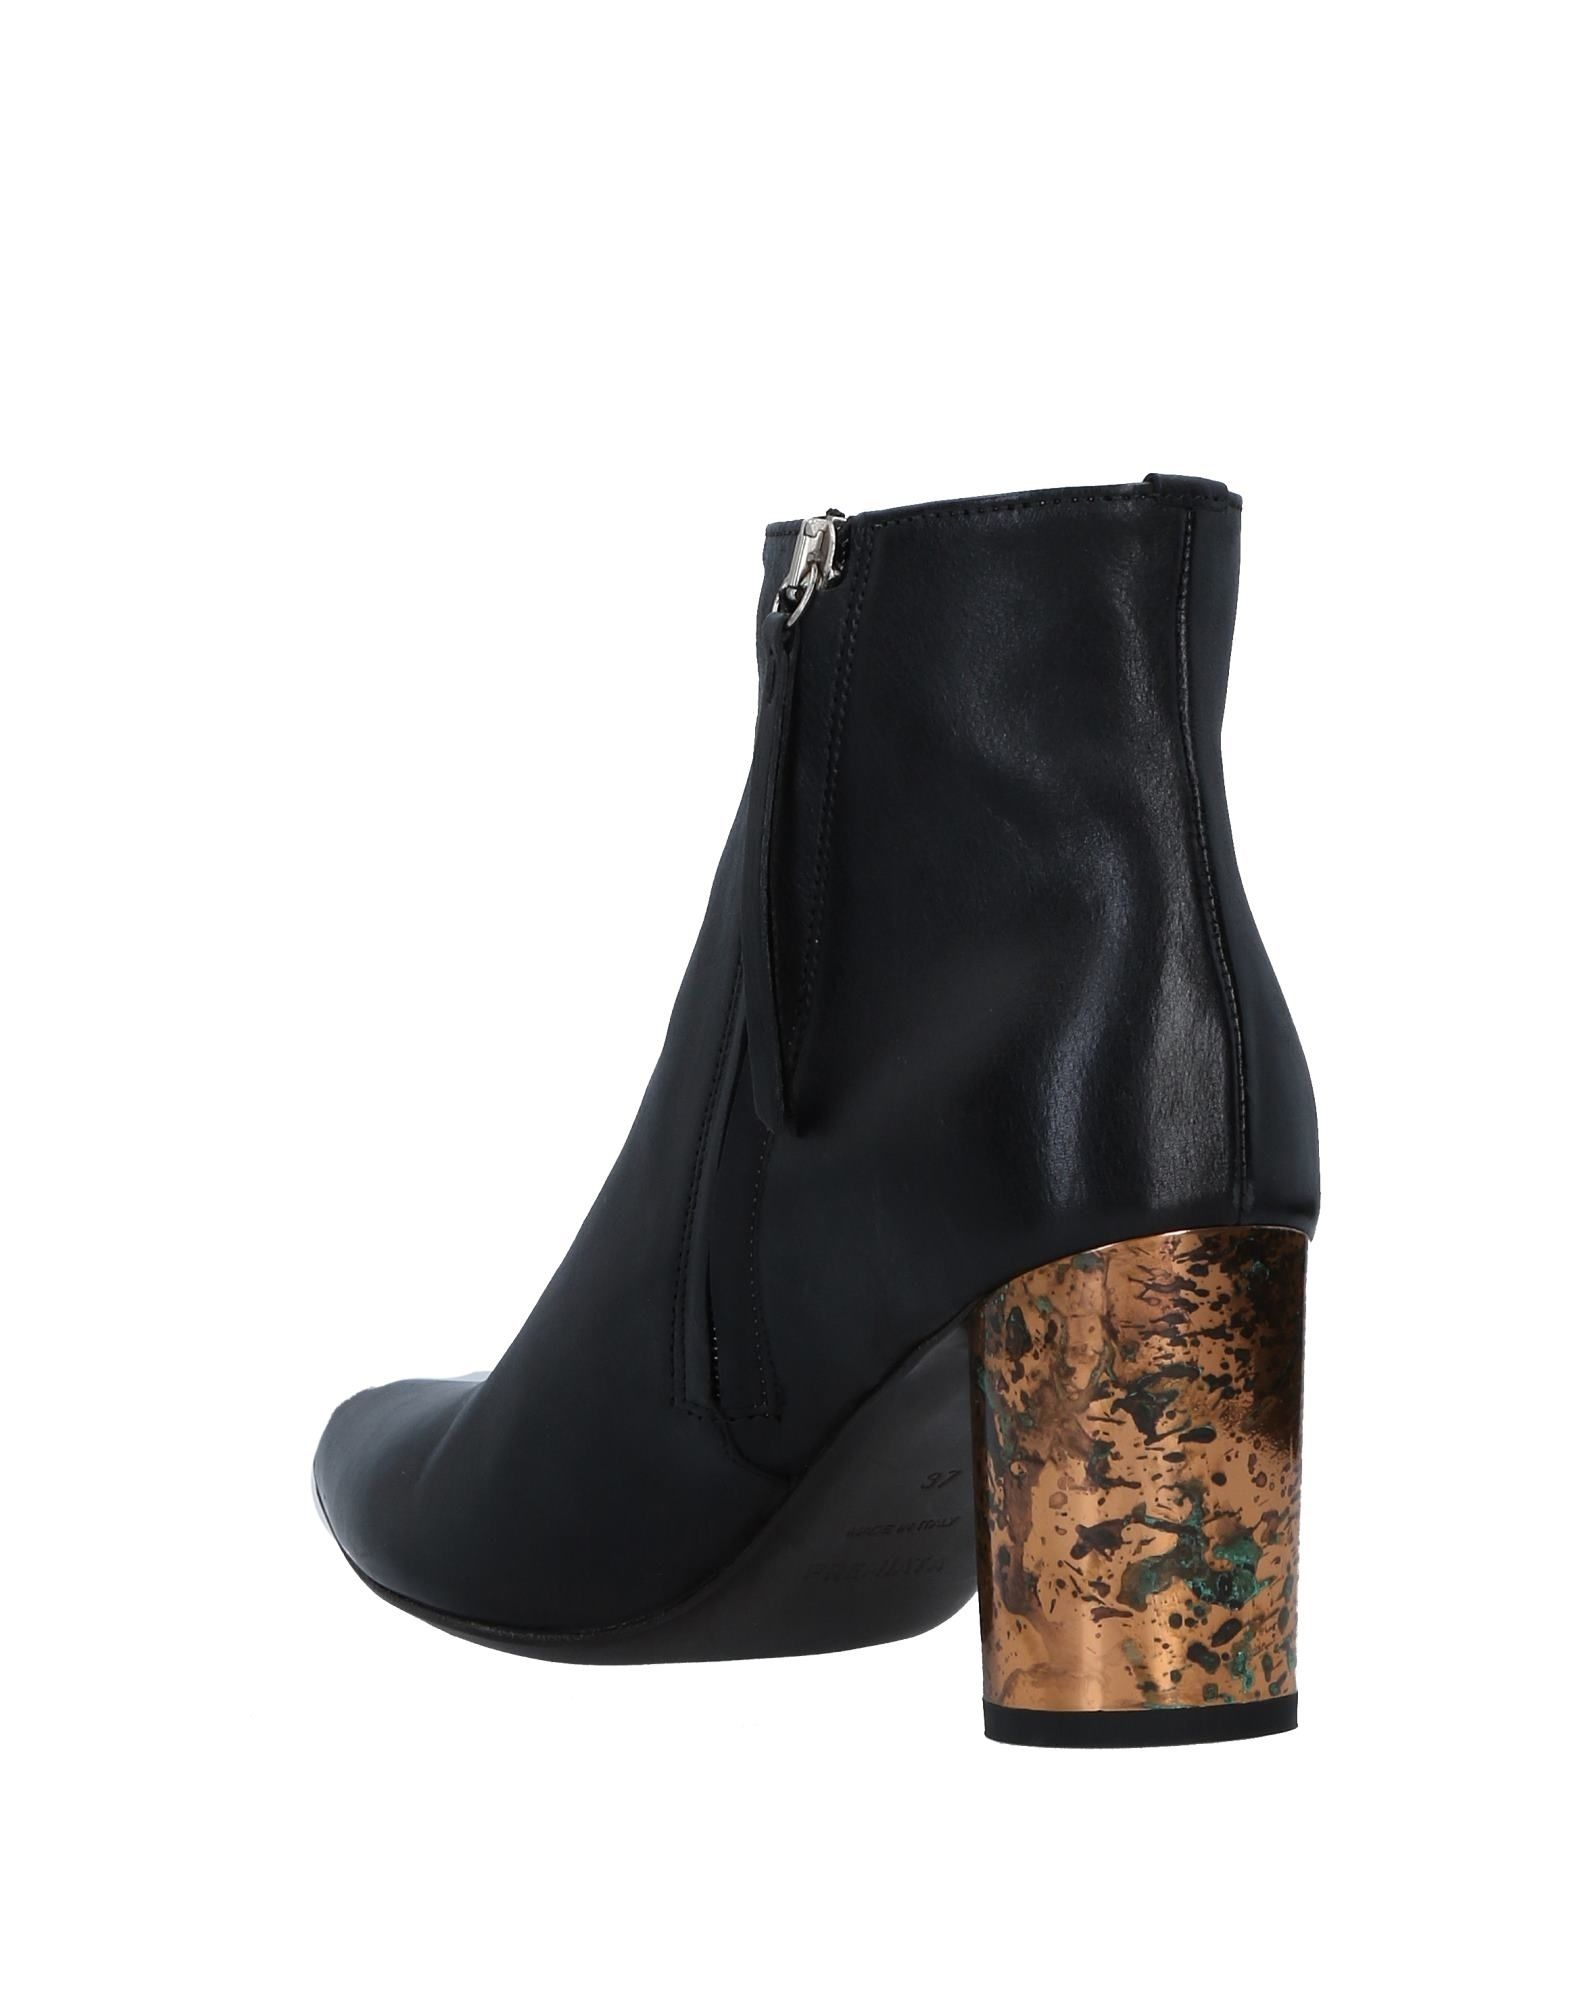 Premiata Ankle Ankle Boot - Women Premiata Ankle Ankle Boots online on  United Kingdom - 11529869ED 0697a9